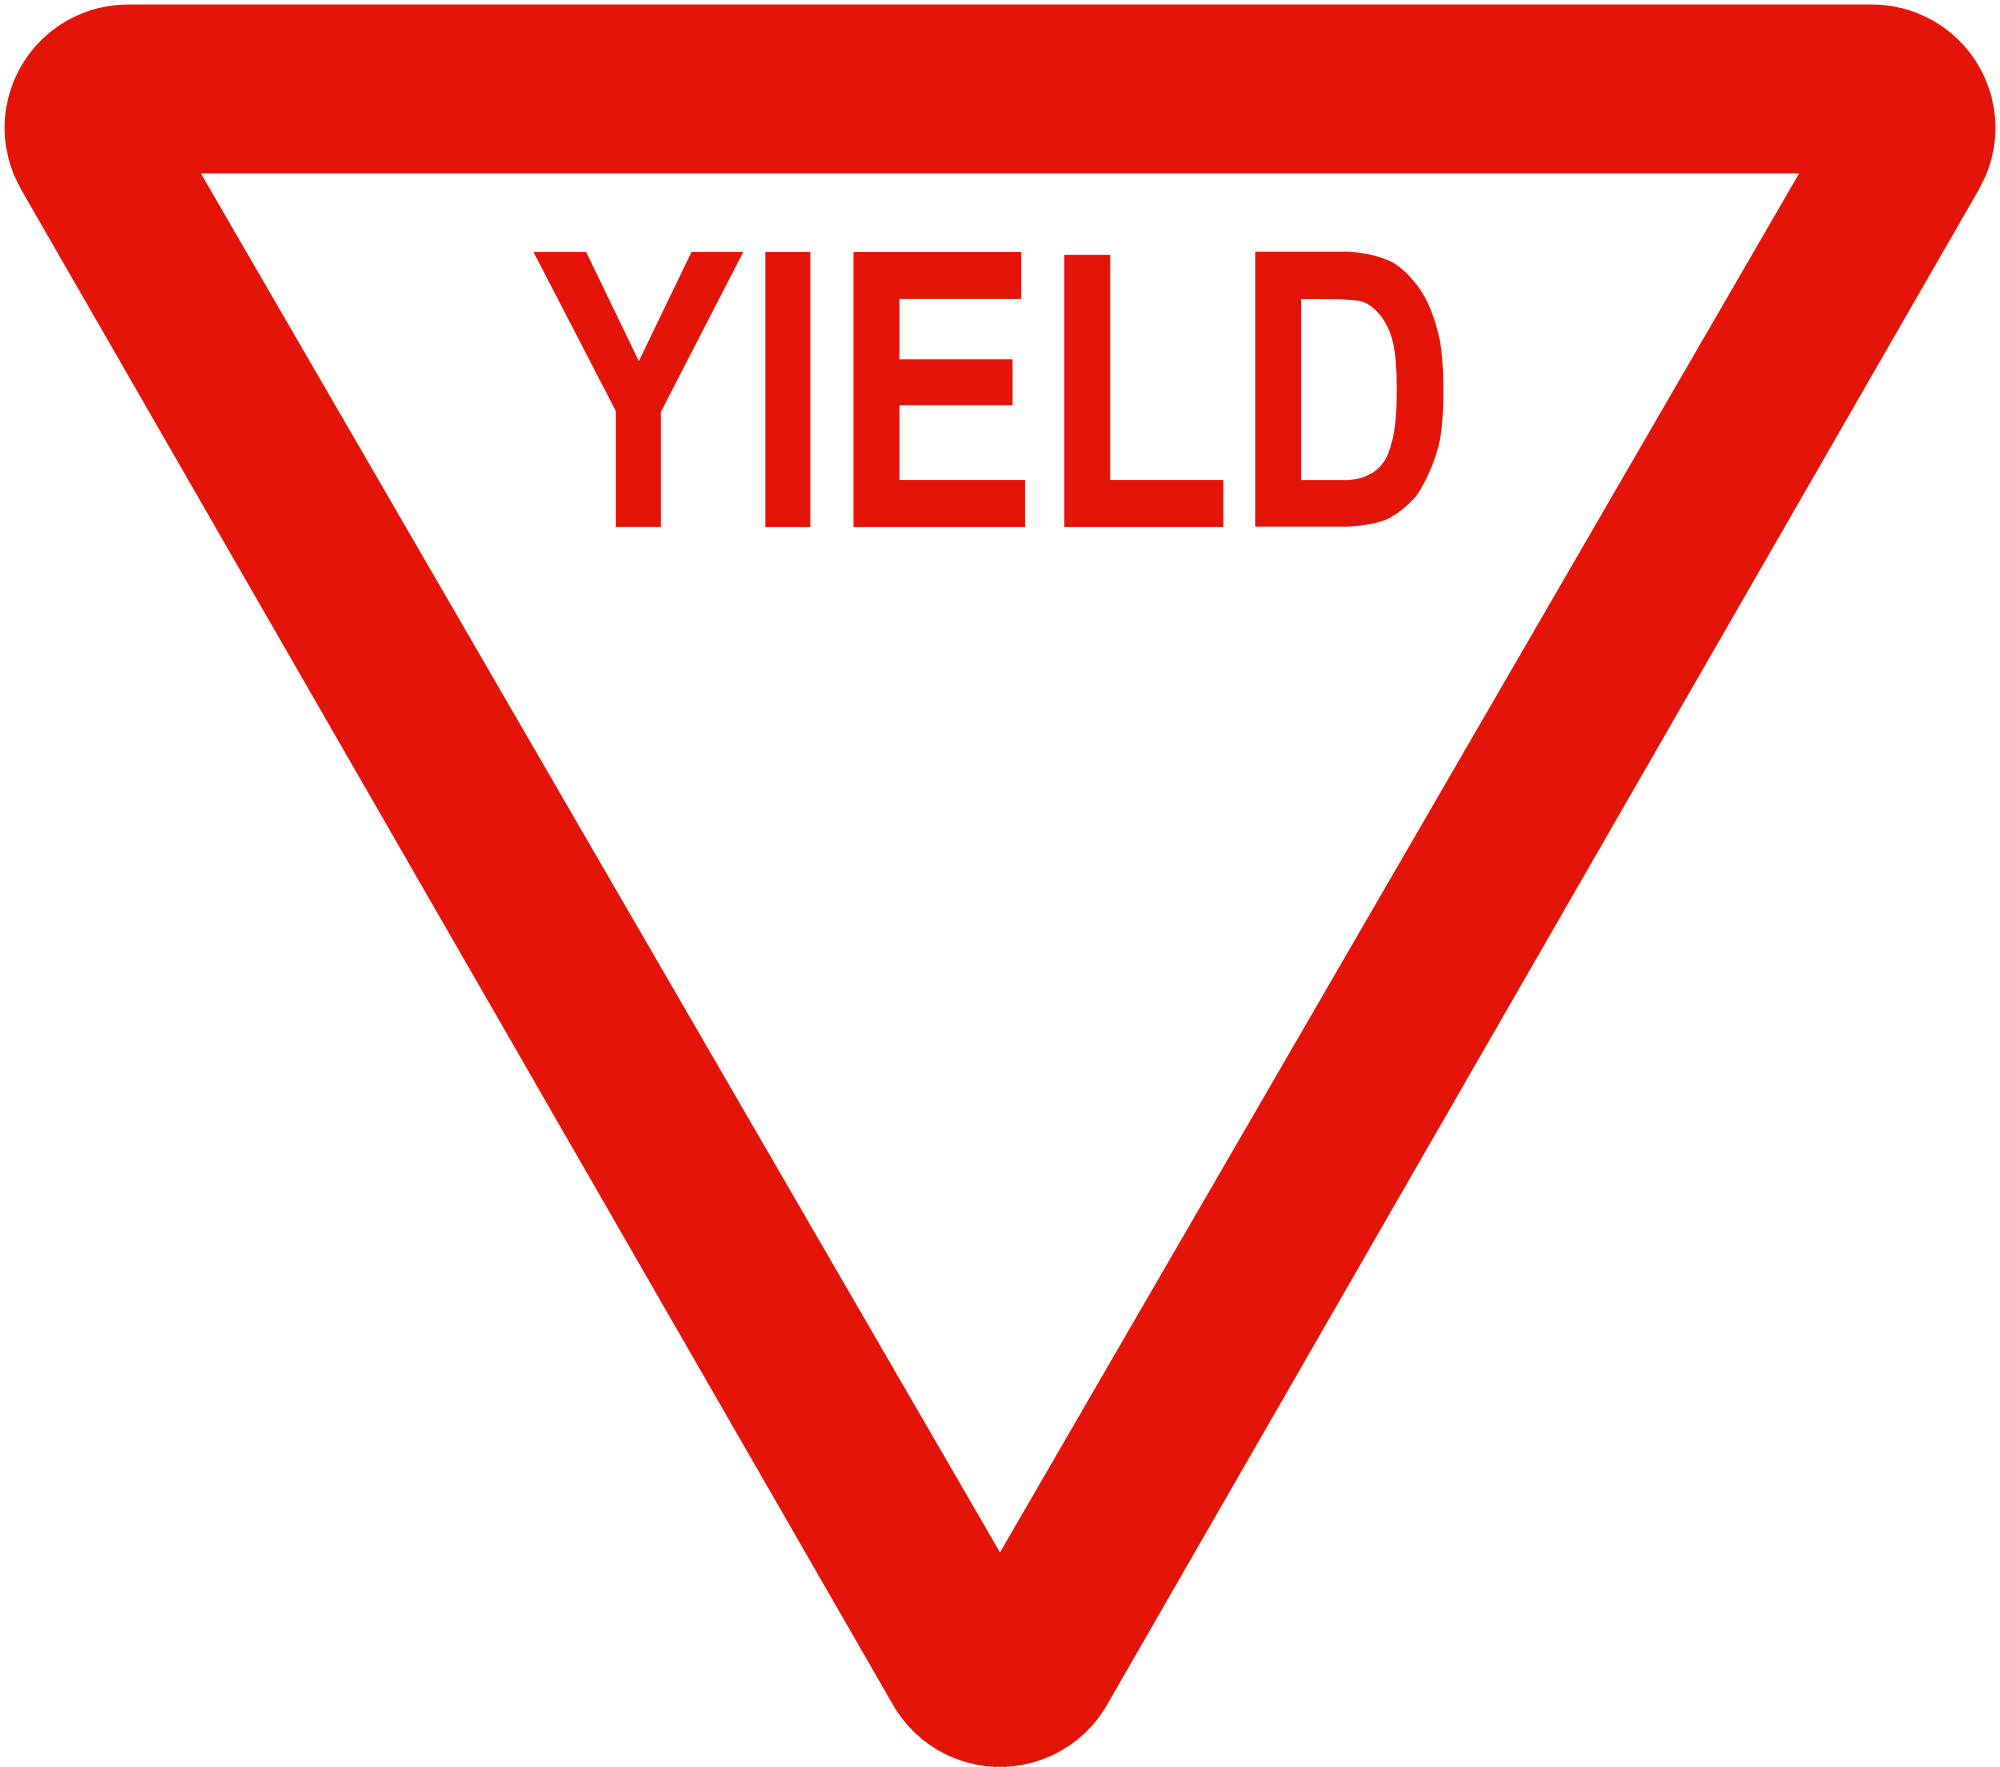 File liberian road signs. Yield sign png image transparent download